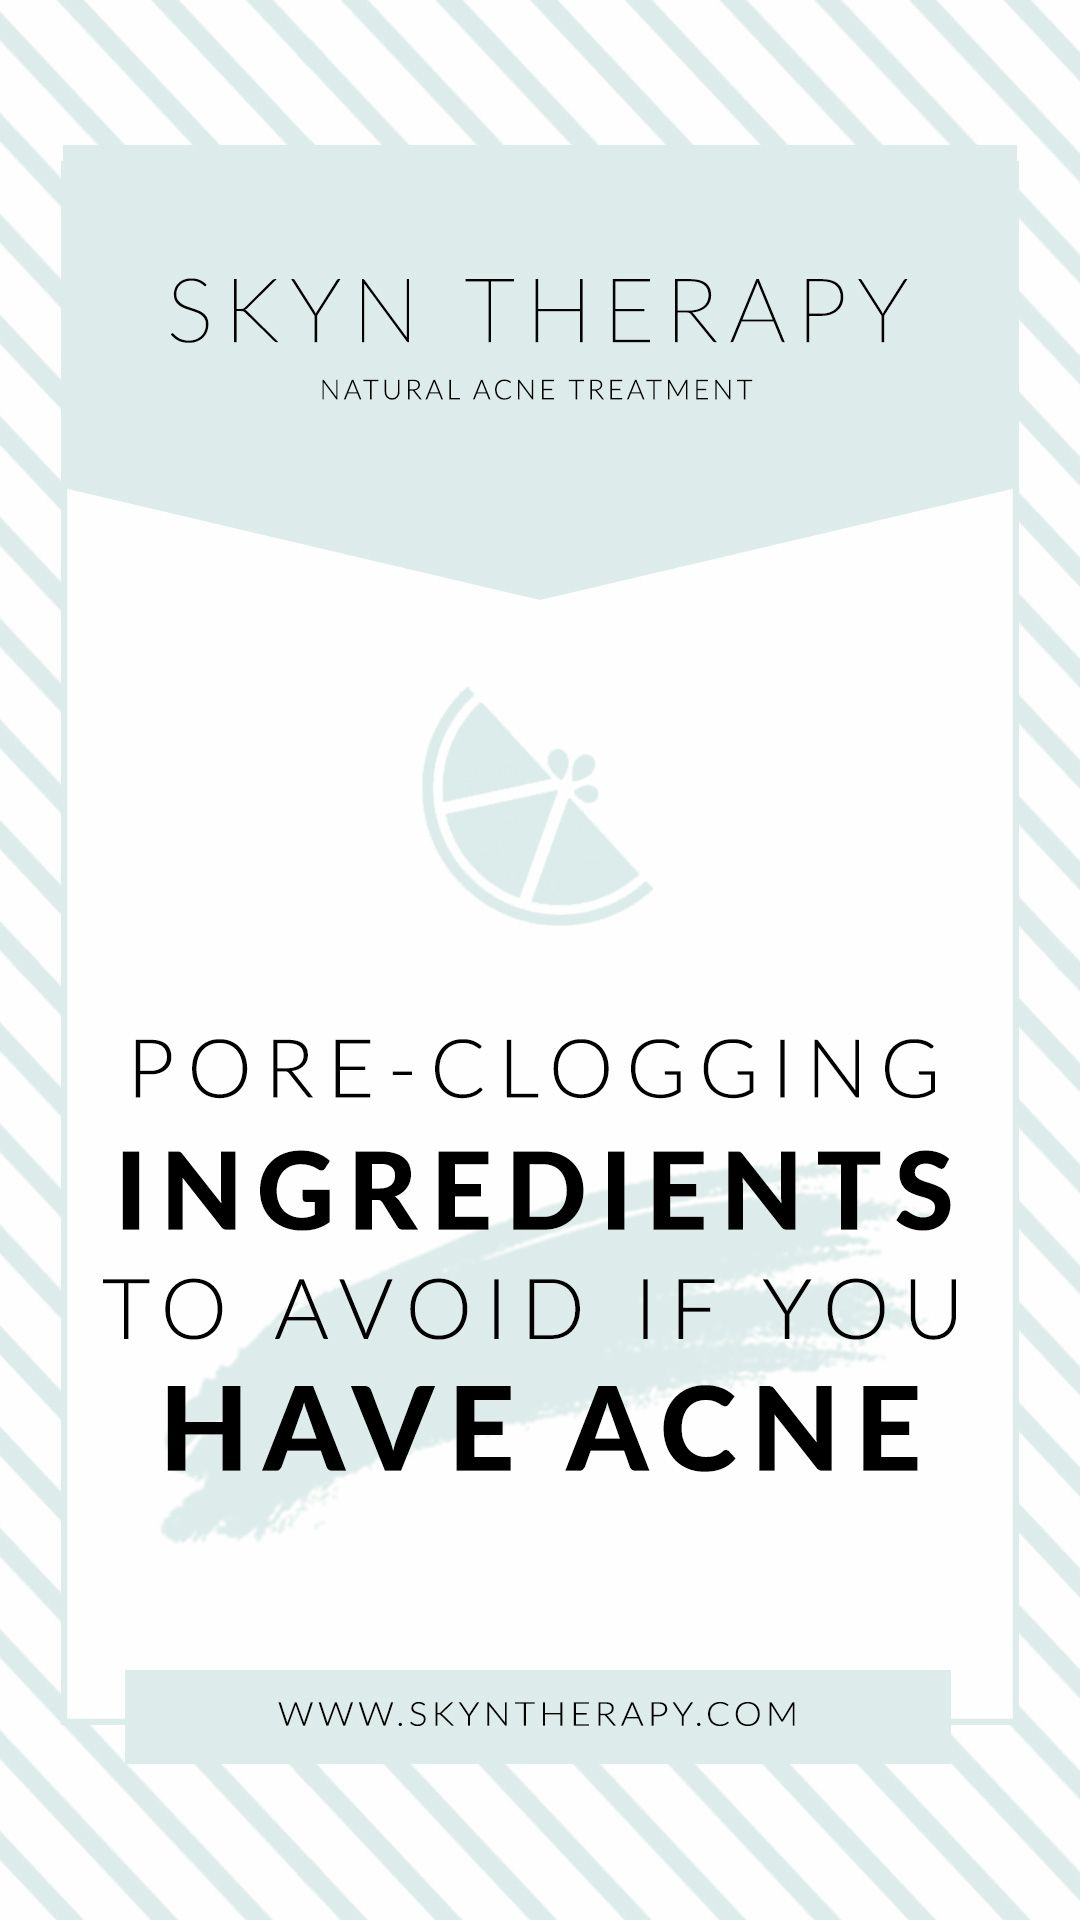 Pore clogging ingredients to avoid for acne prone skin